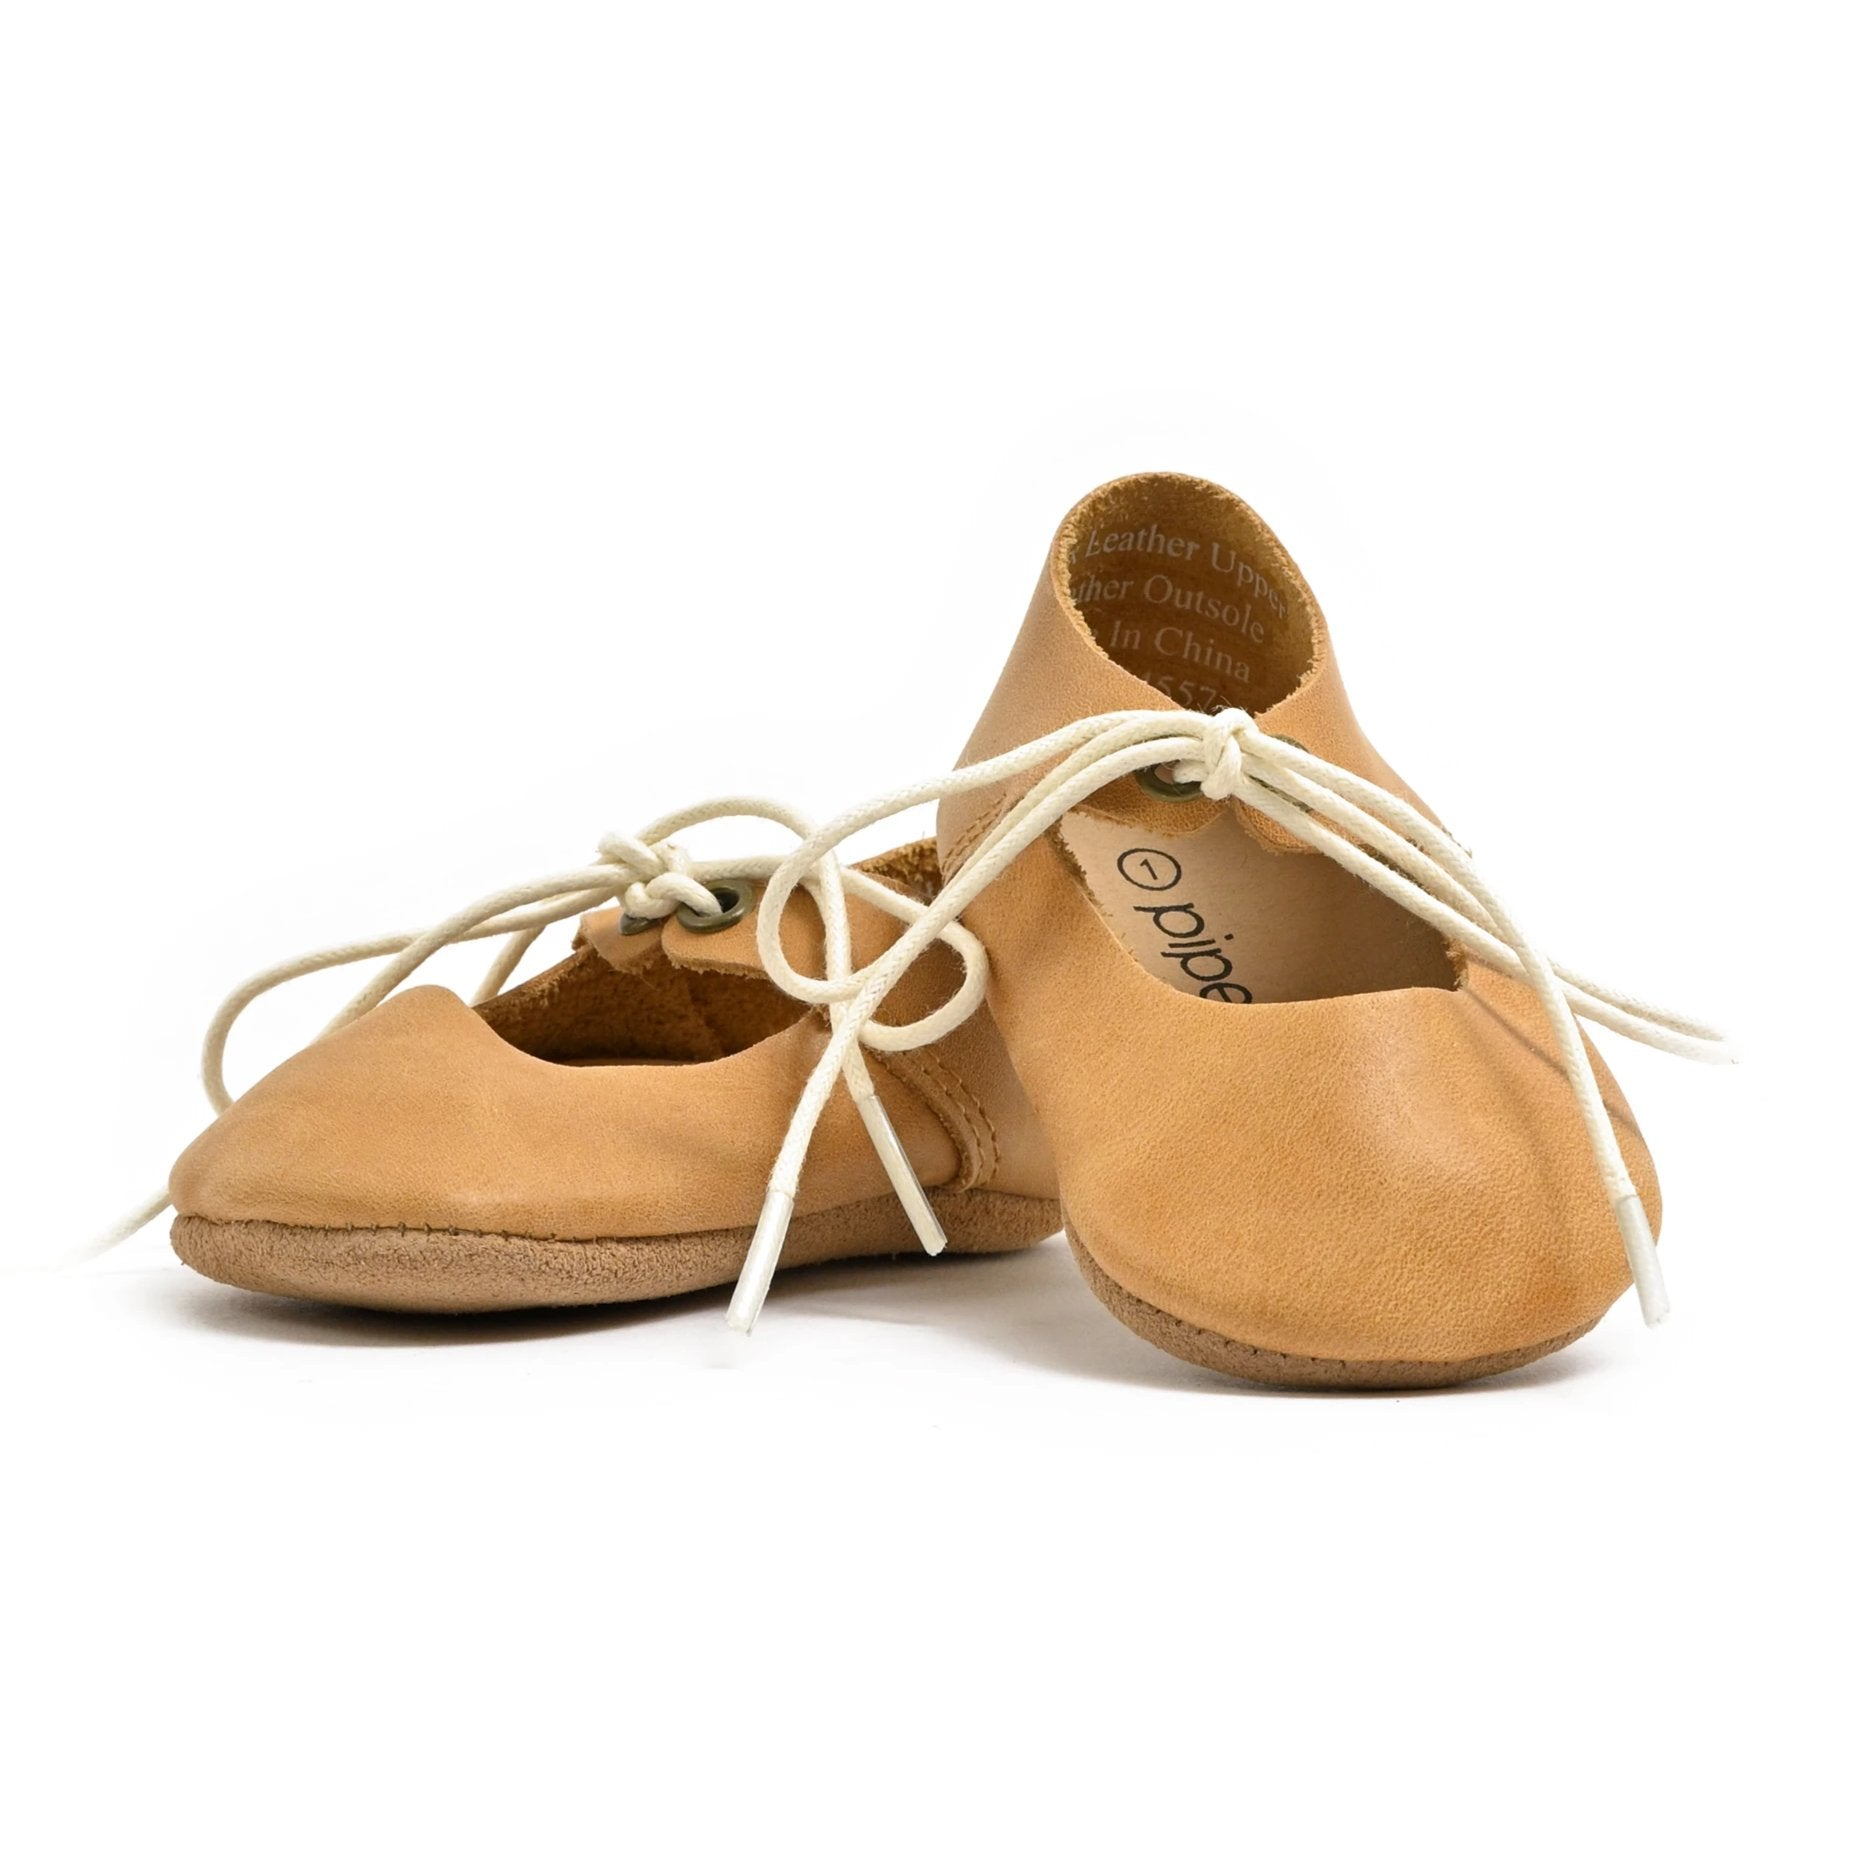 Natural - Lace-Up Mary Jane - Soft Sole